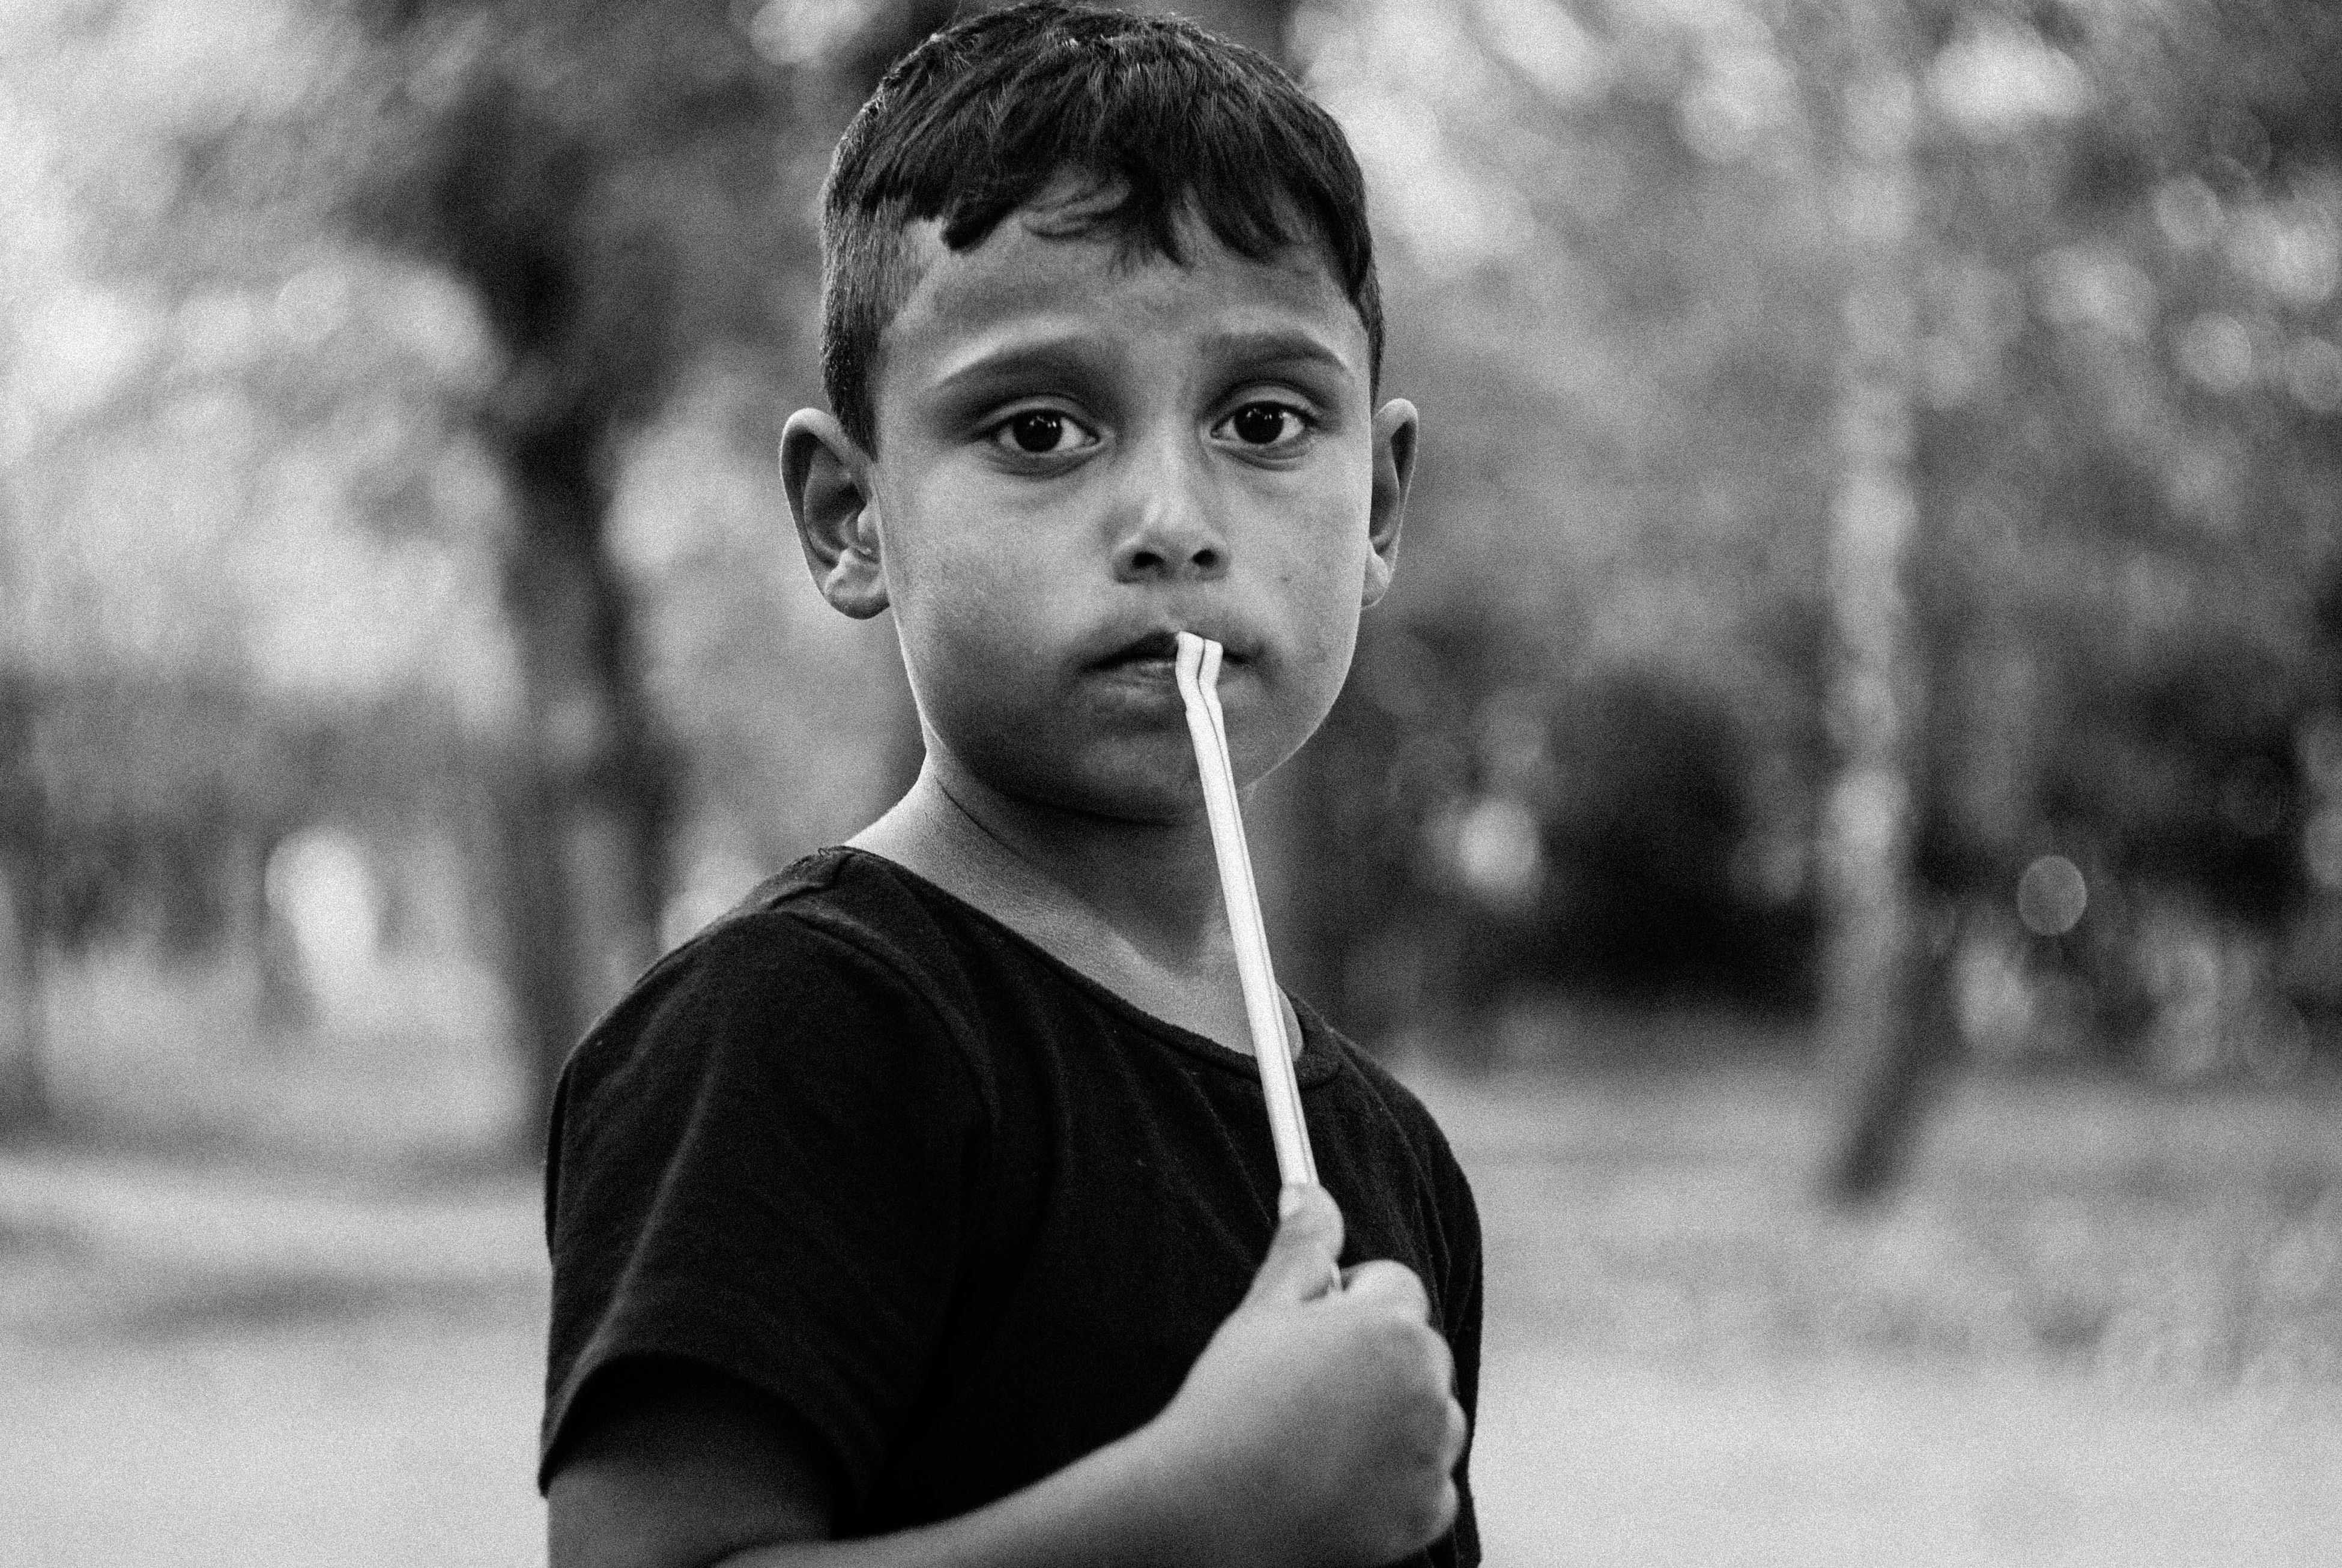 boys, childhood, one person, real people, focus on foreground, looking at camera, casual clothing, outdoors, one boy only, child, headshot, portrait, children only, lifestyles, day, tree, people